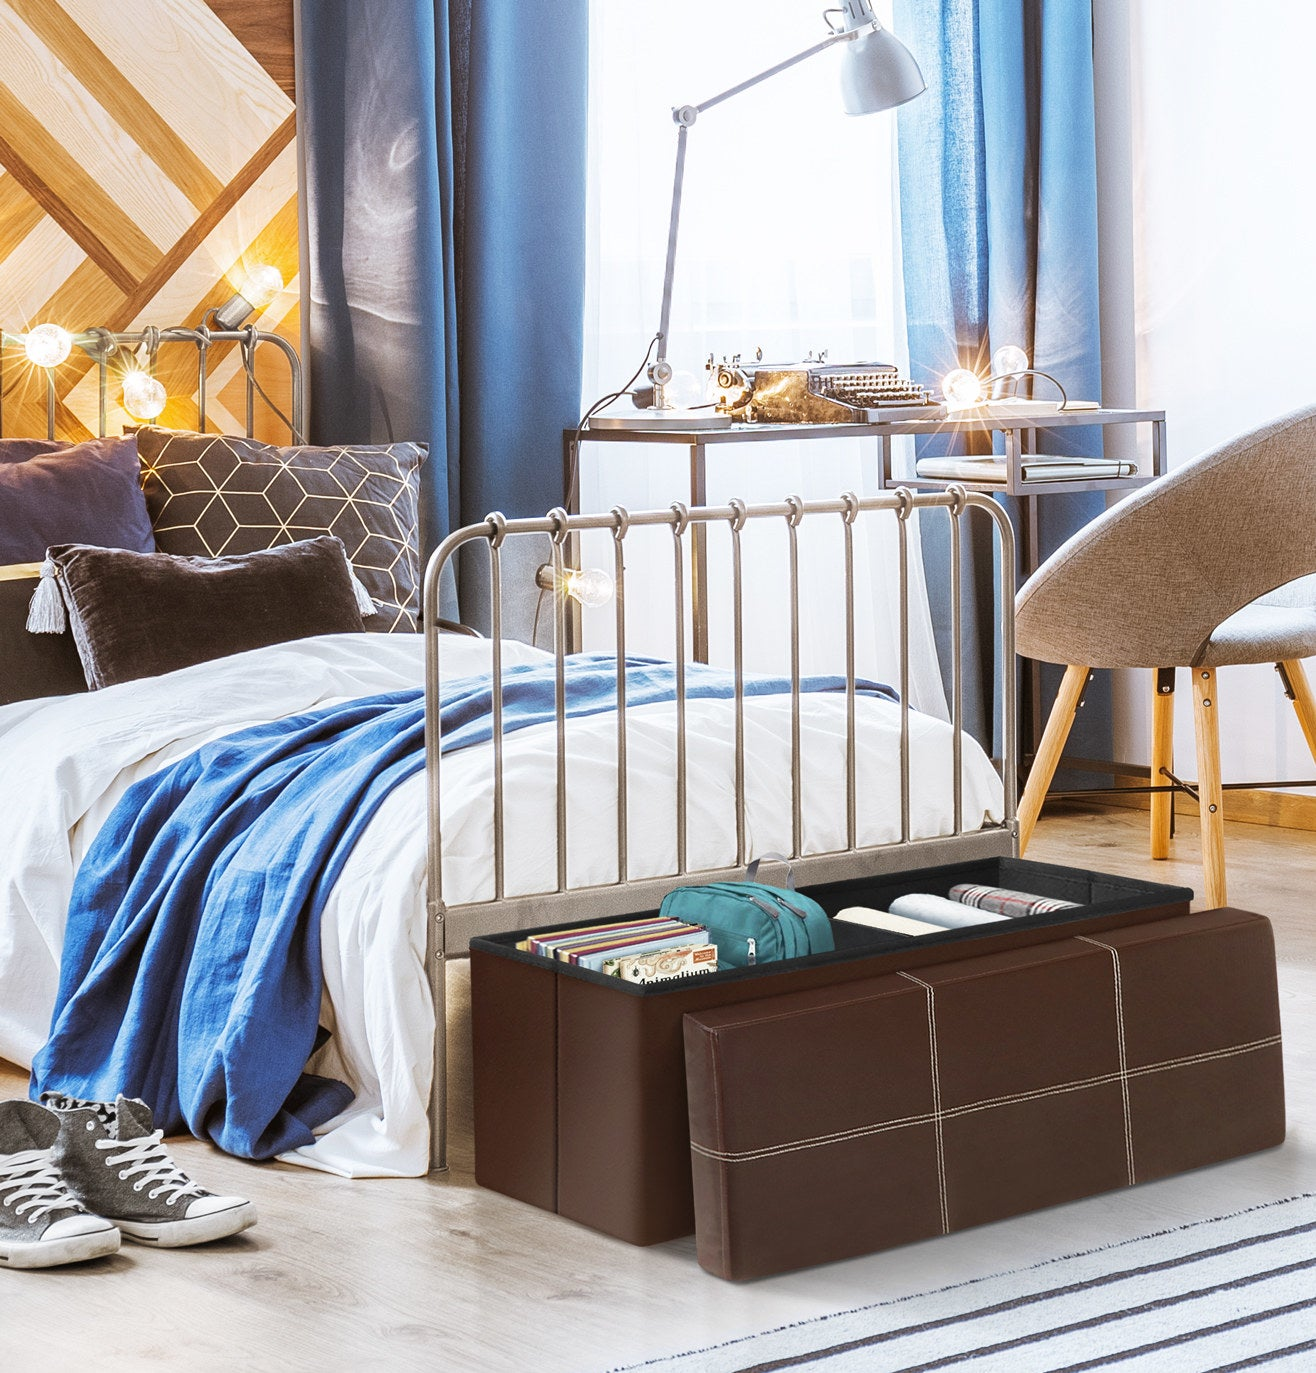 The brown ottoman at the foot of a bed